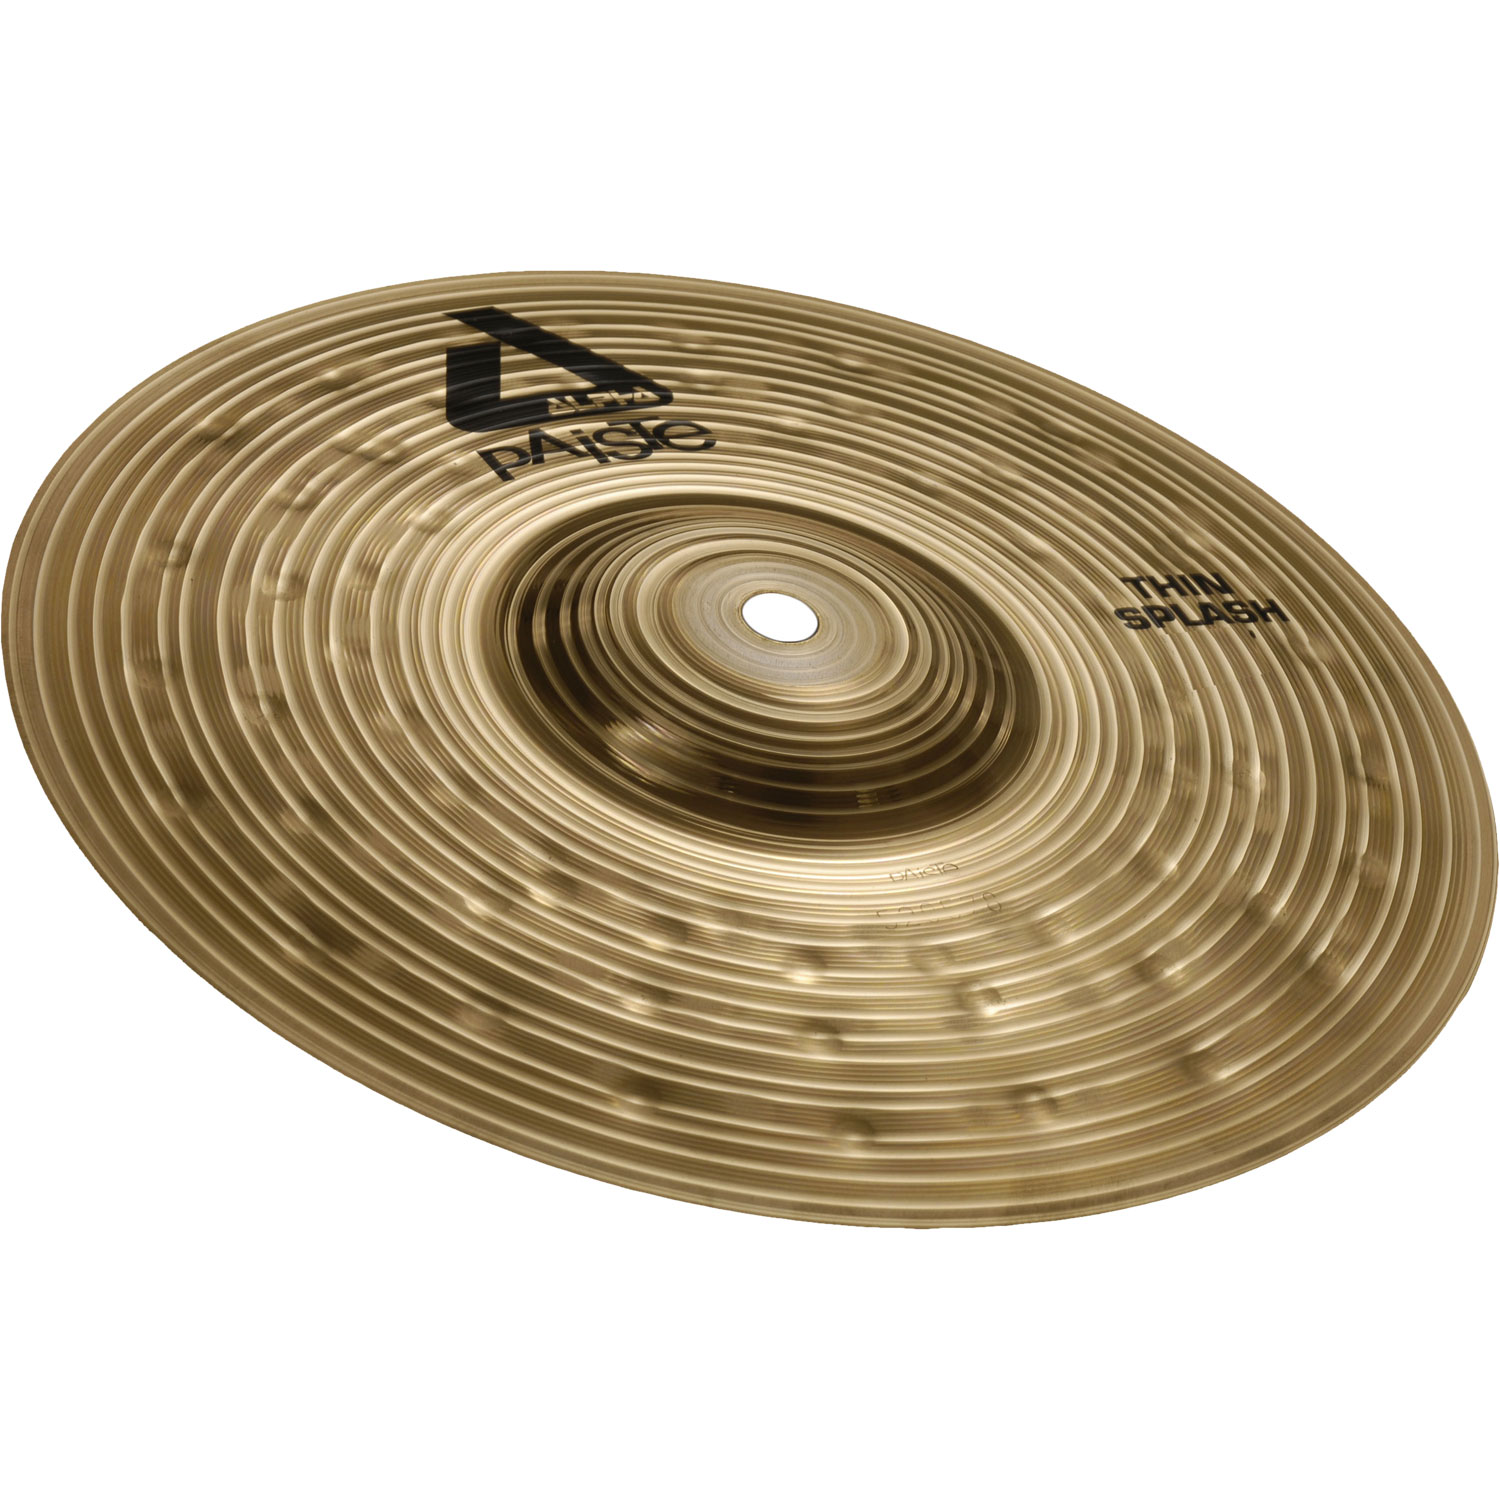 "Paiste 8"" Alpha B Thin Splash Cymbal"